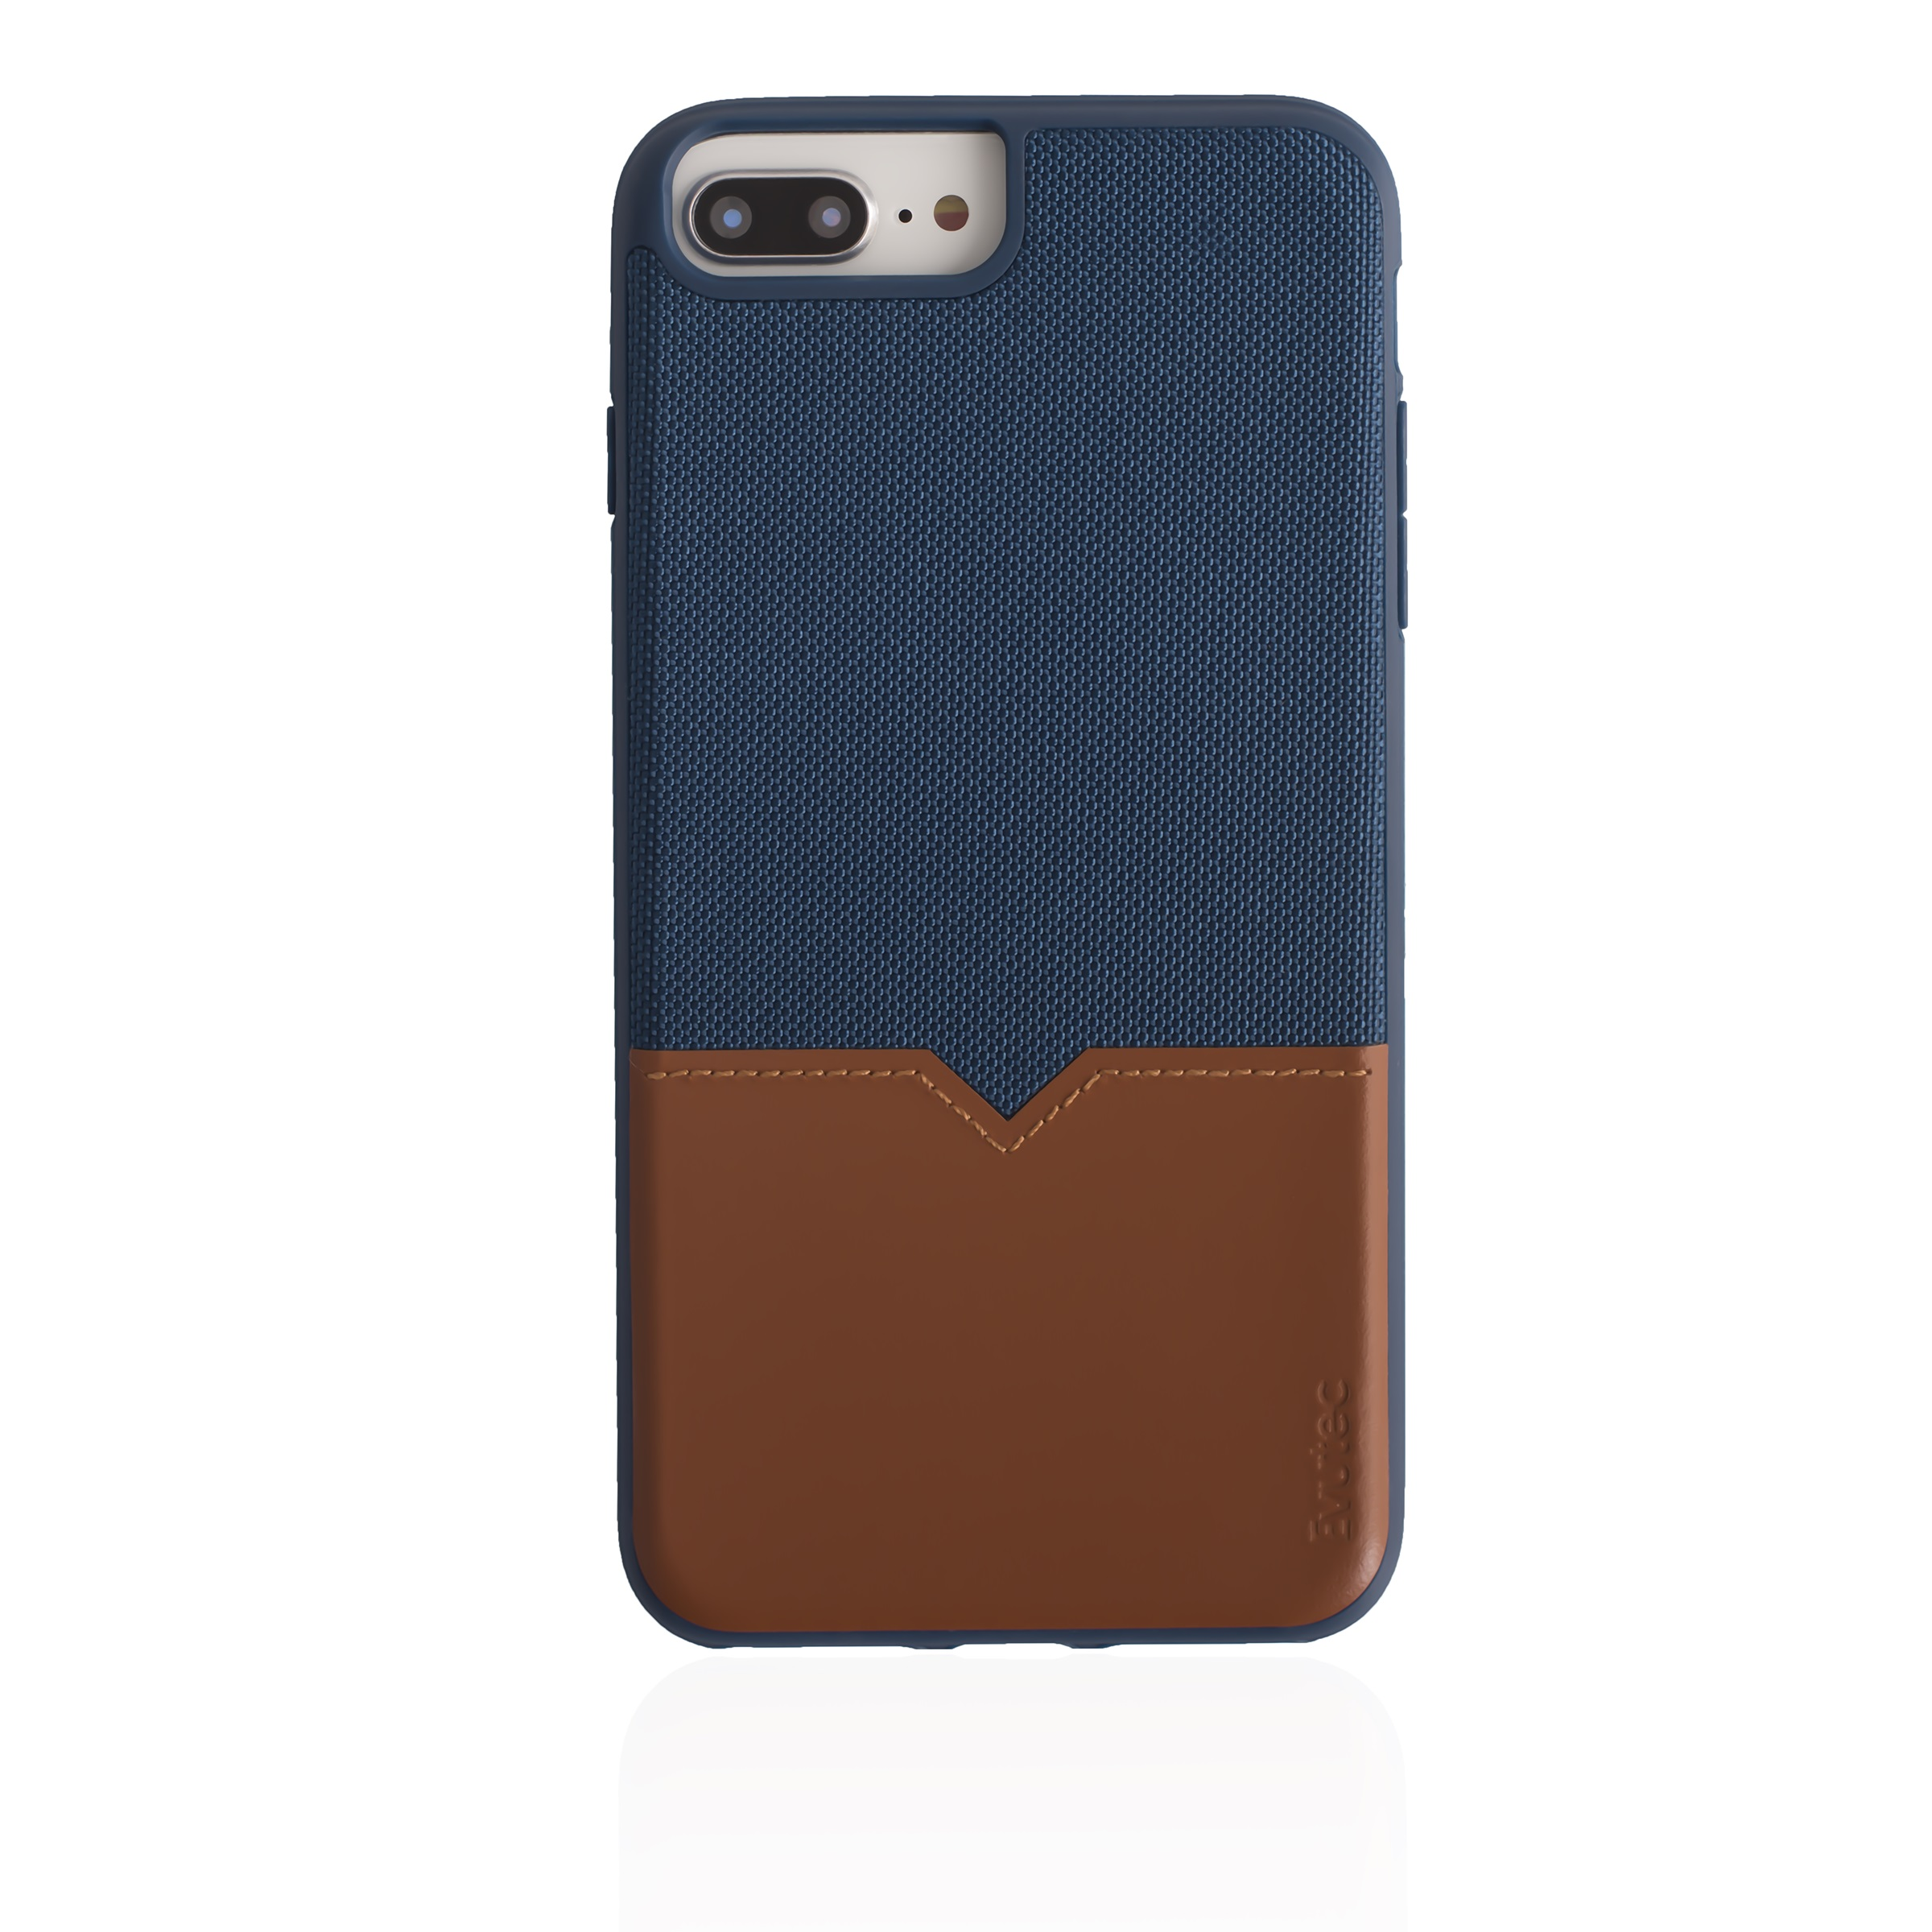 EVUTEC NH68PMTD03 BLUE IPHONE CASE FOR 6 6S 7 7S & 8 PLUS